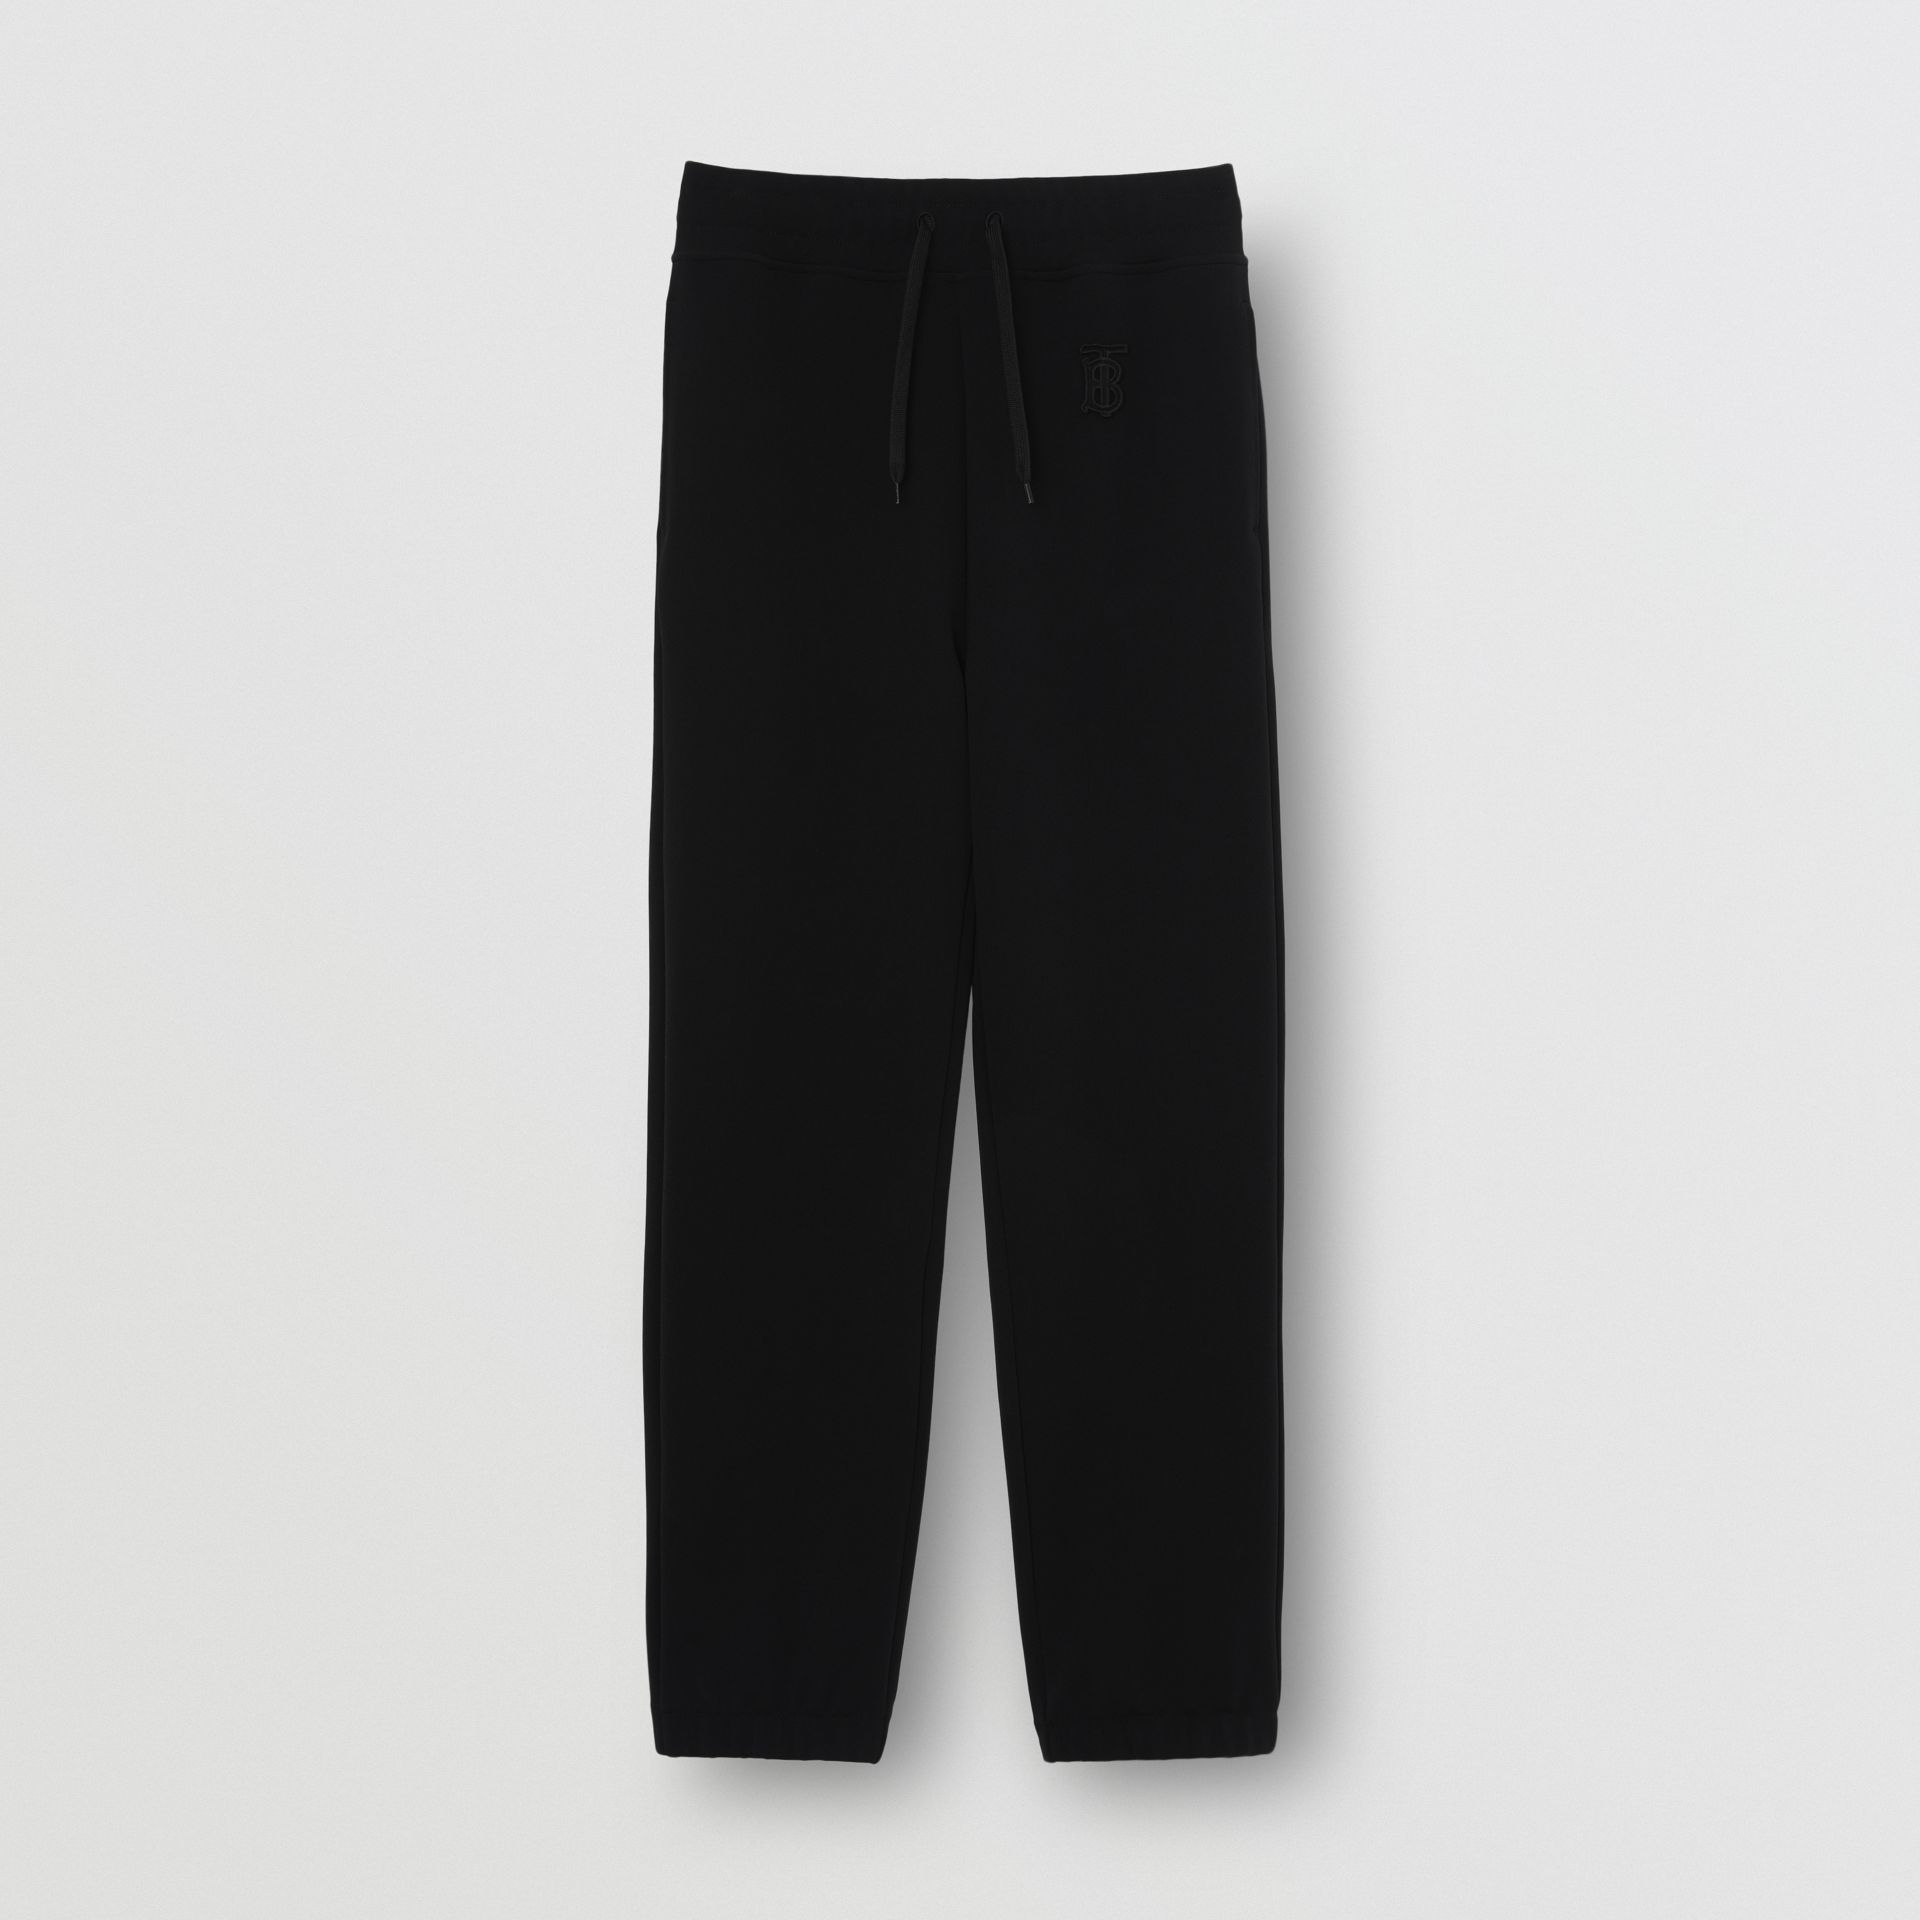 Pantalon de survêtement technique Monogram (Noir) - Femme | Burberry Canada - photo de la galerie 3